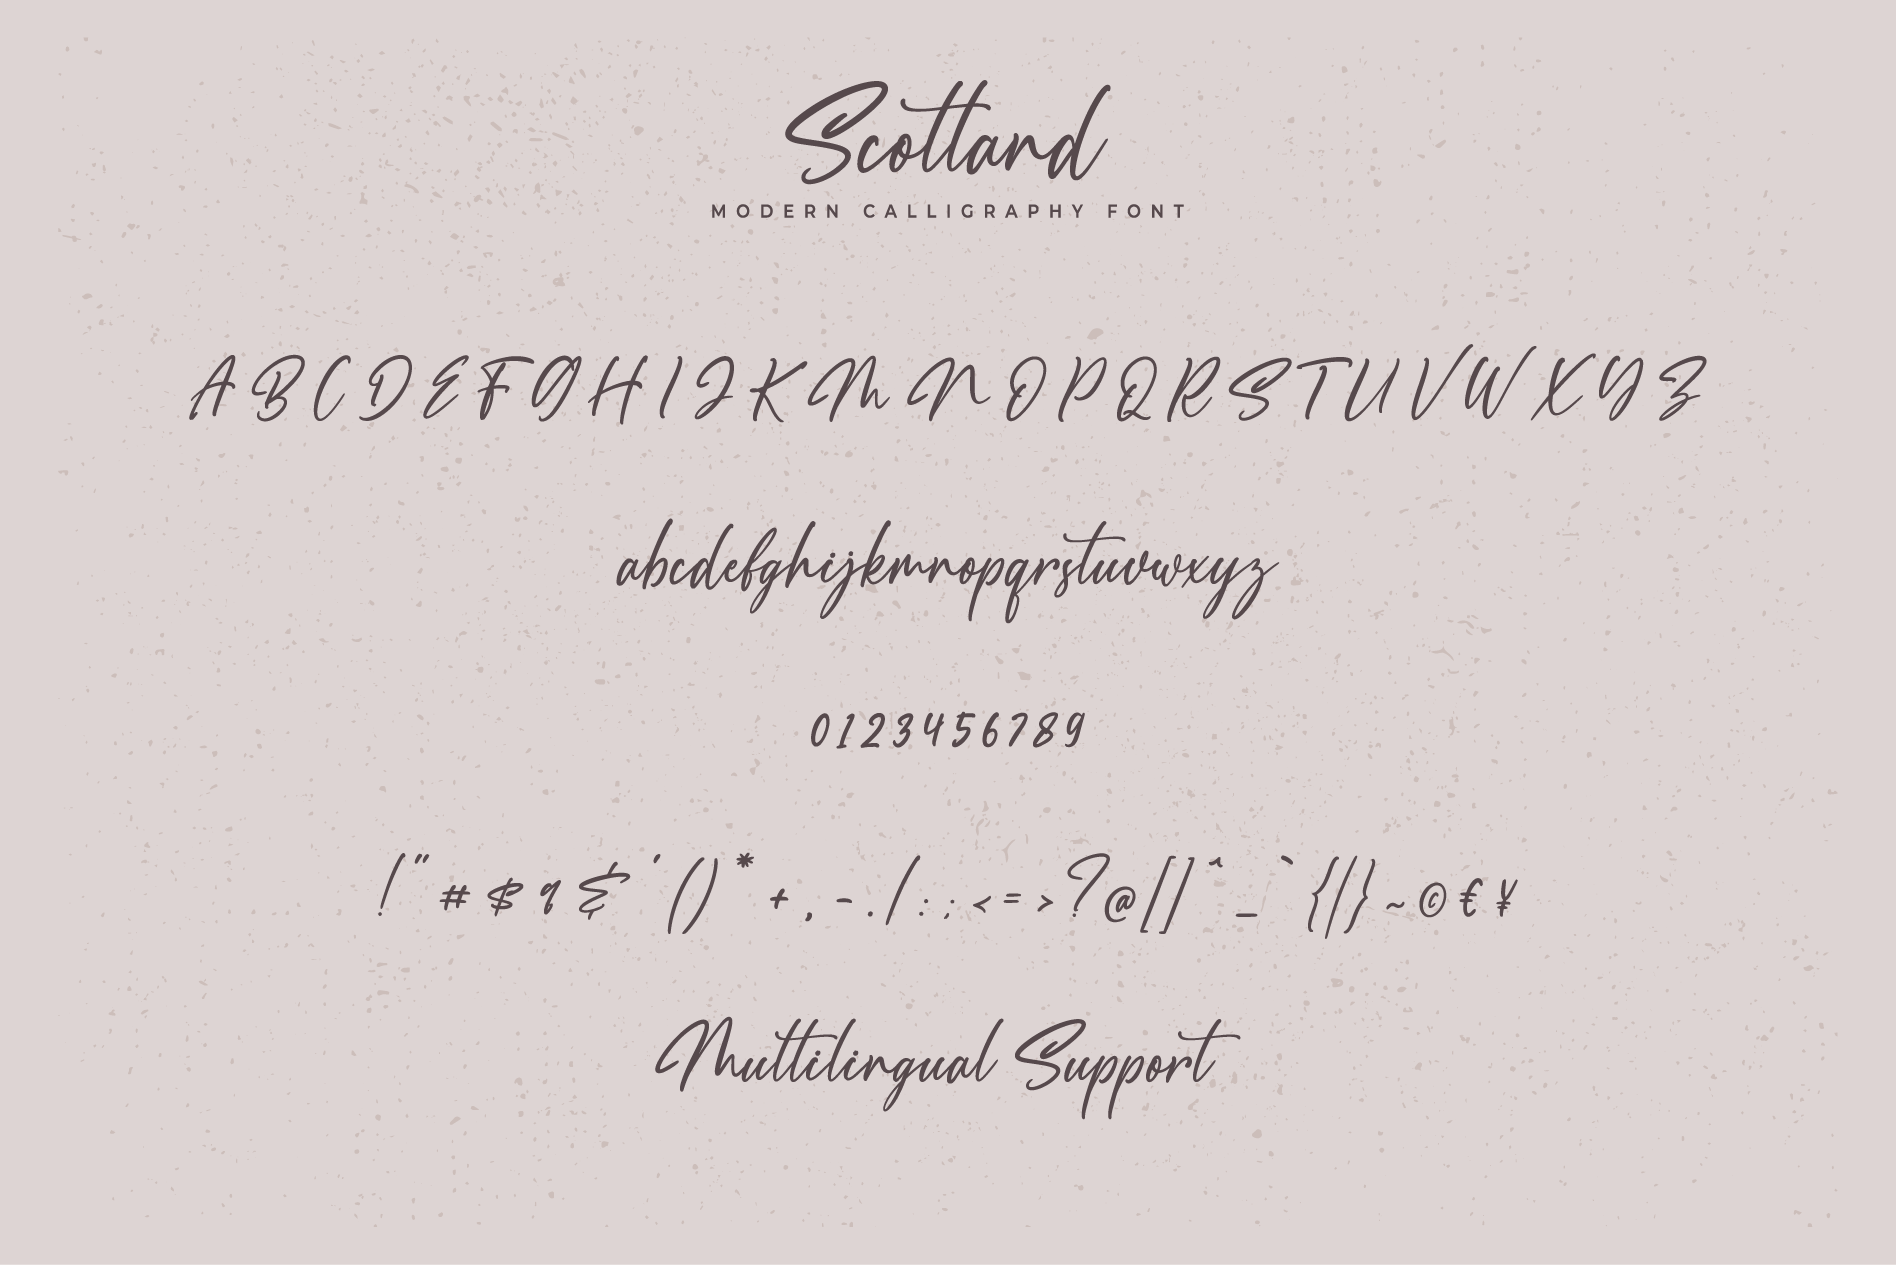 Scotland - Modern Calligraphy font example image 8